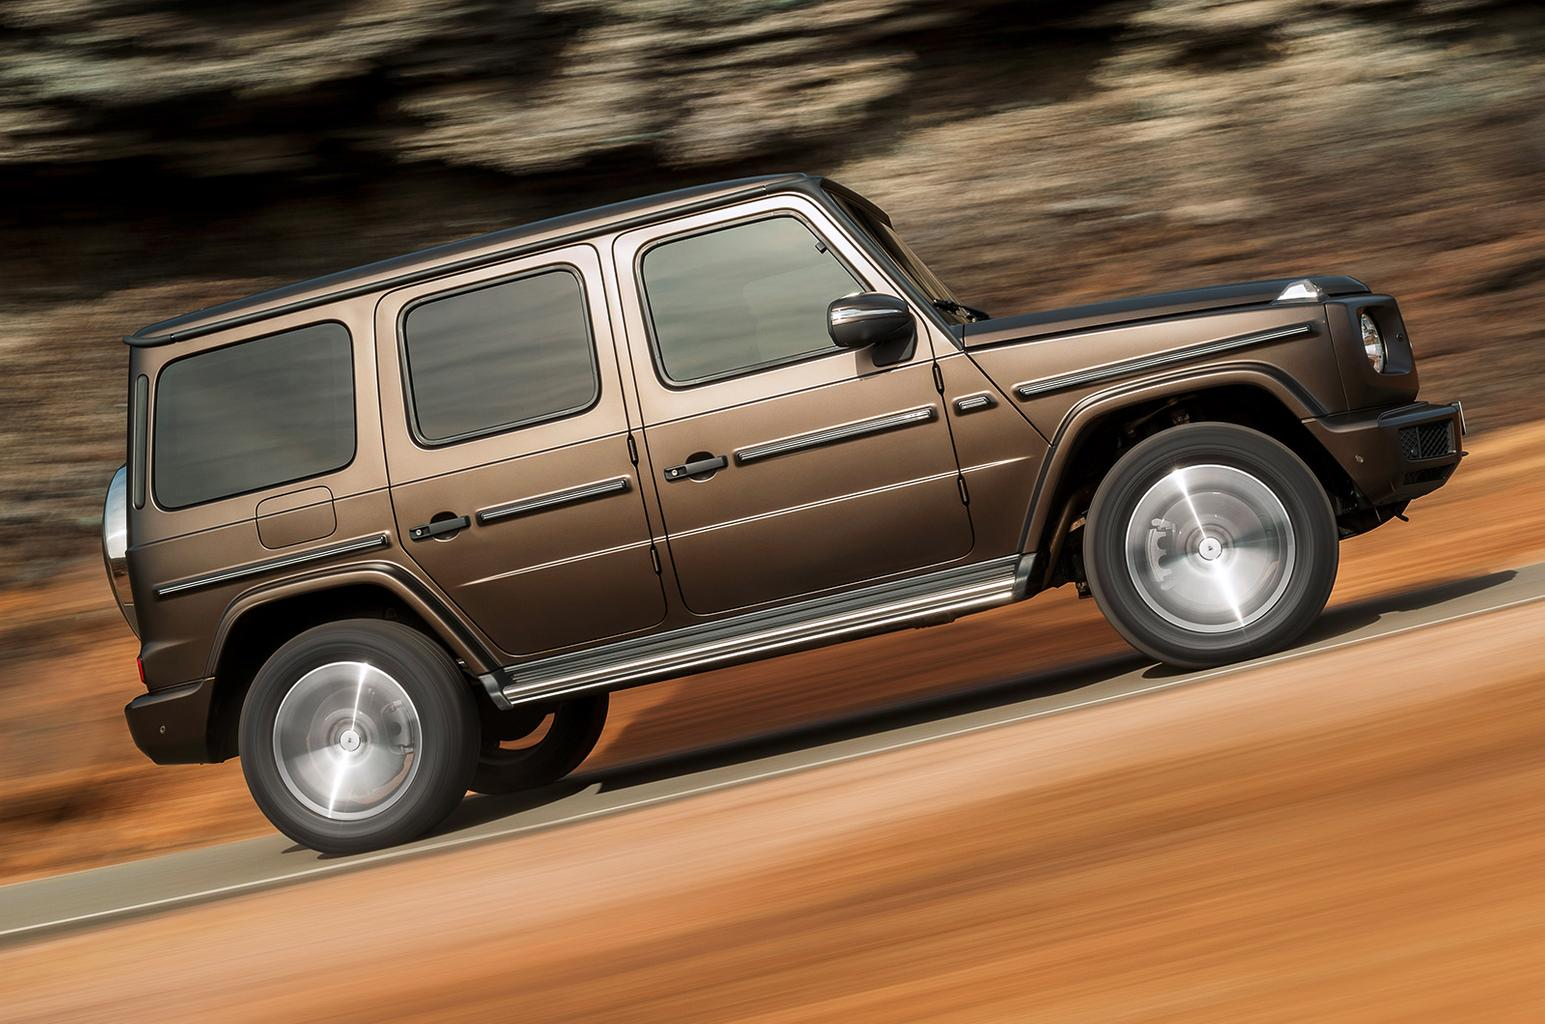 2018 Mercedes G-Class – price, specs and release date